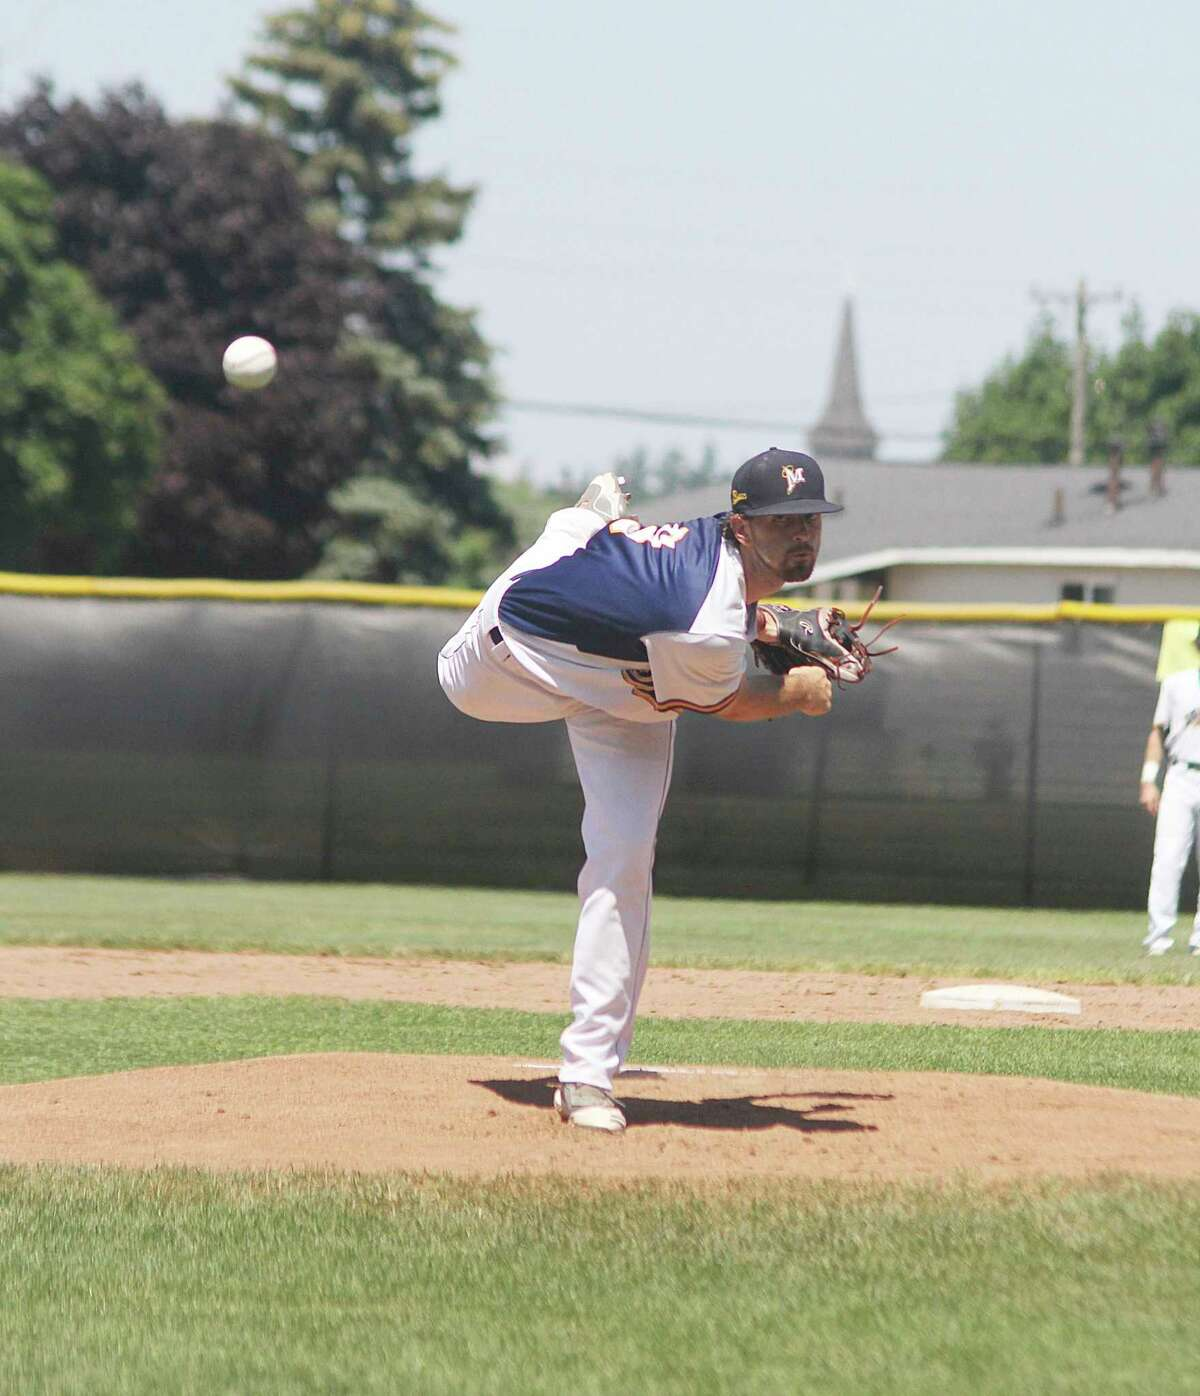 Manistee Saints' player-manager Roddy MacNeil picked up the win Wednesday against the Grand Rapids Brewers. (News Advocate file photo)